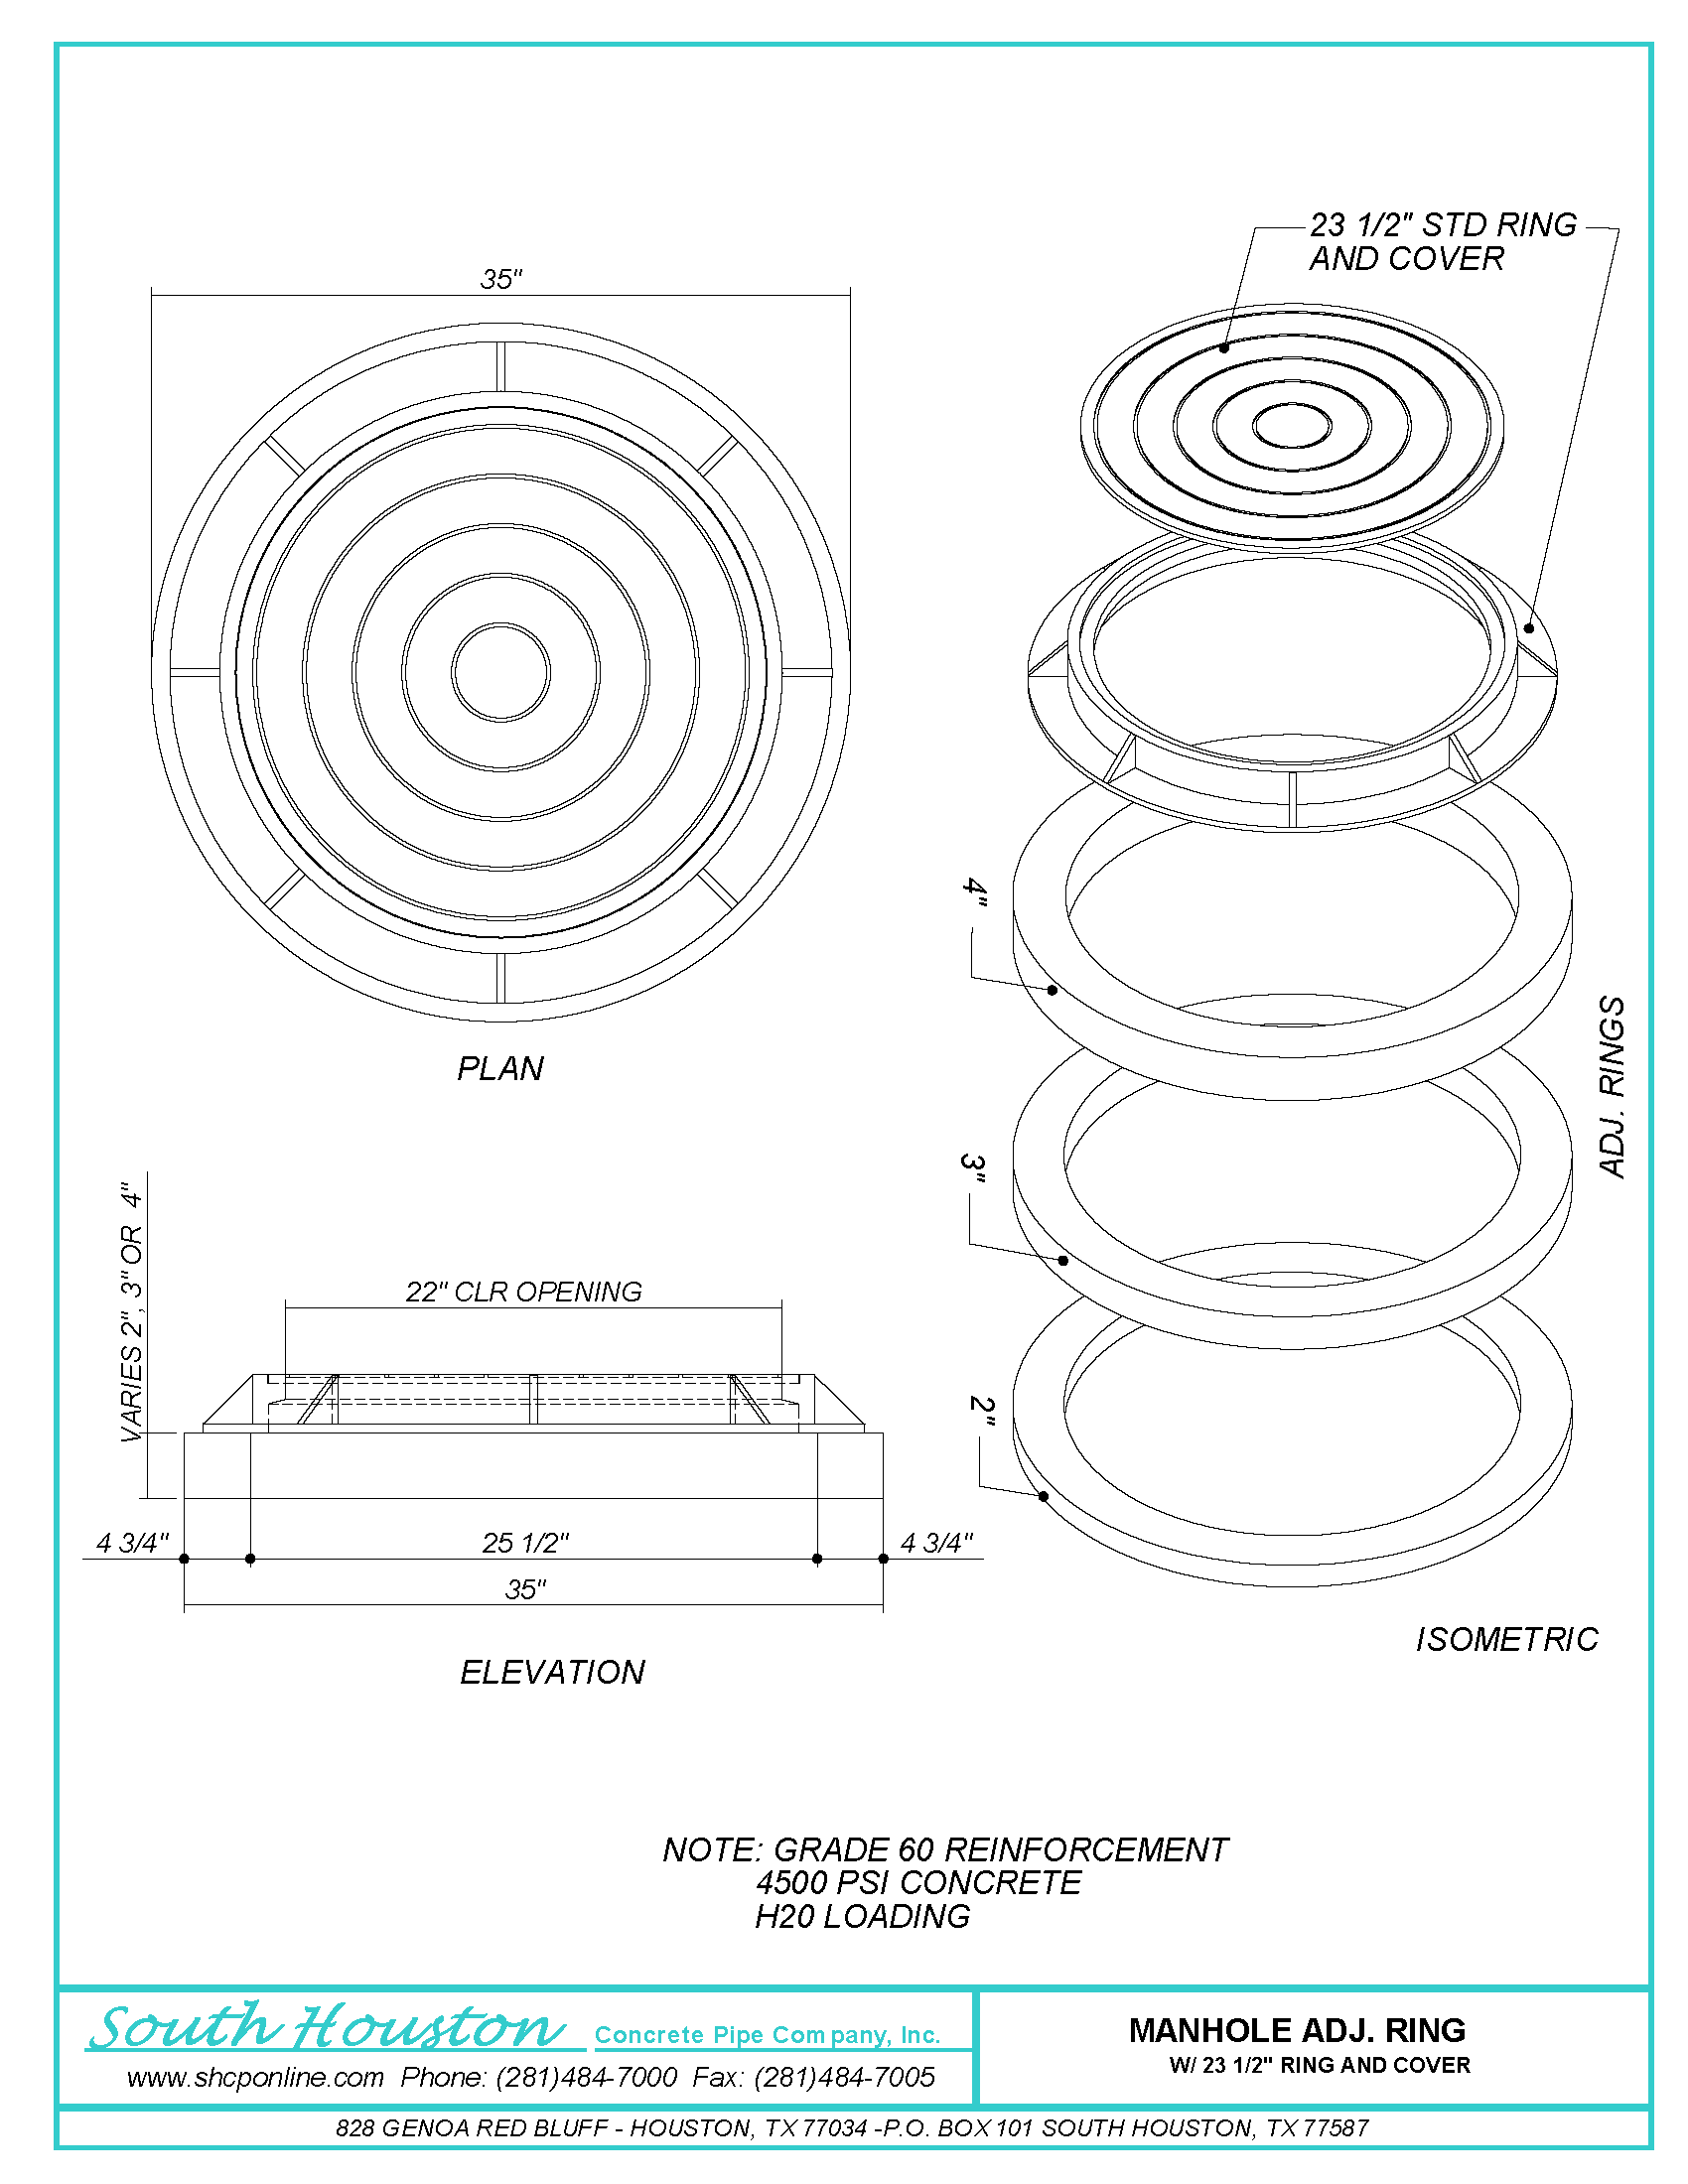 Manholes Storm Manholes Manhole Adjustment Rings And